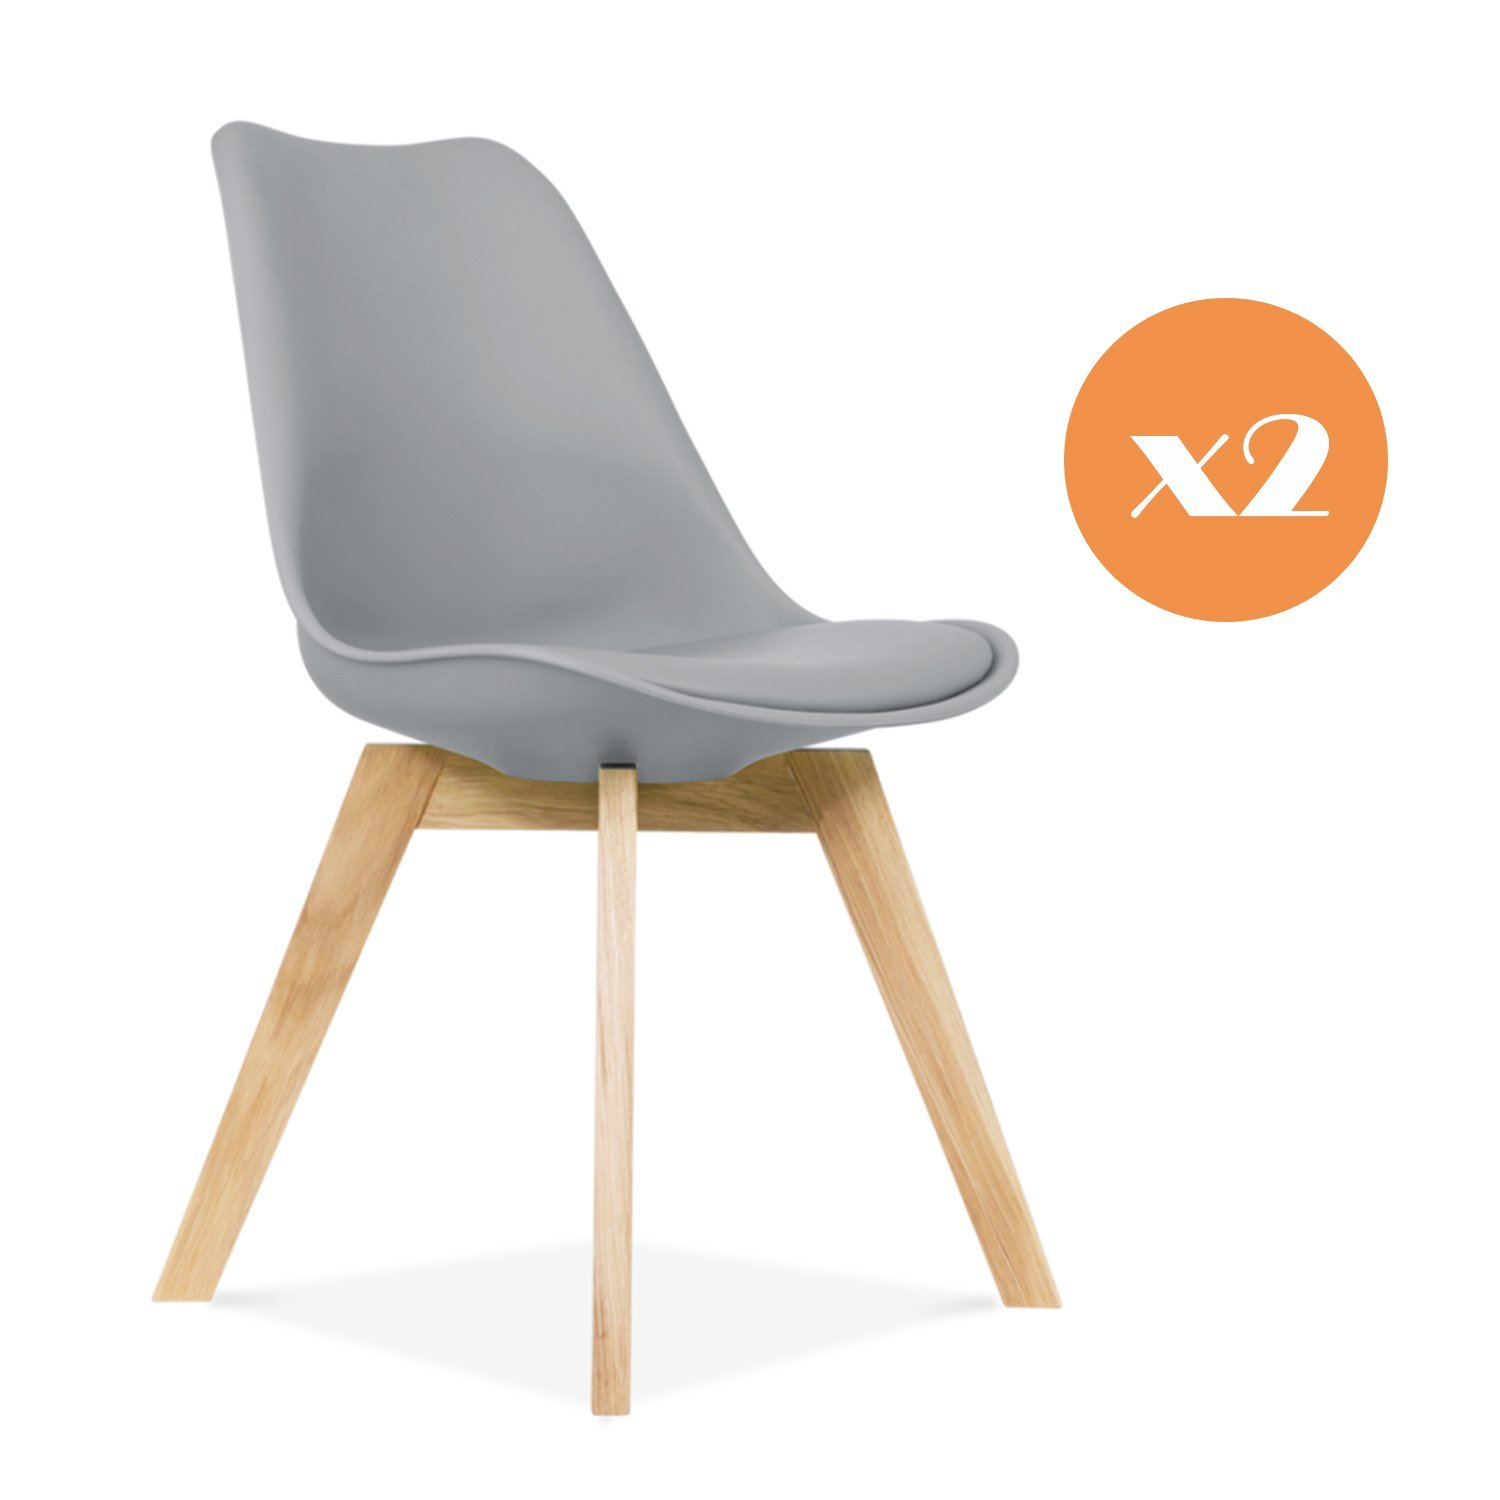 Mmilo Tulip Dining Chair fice chair with Solid legs Padded